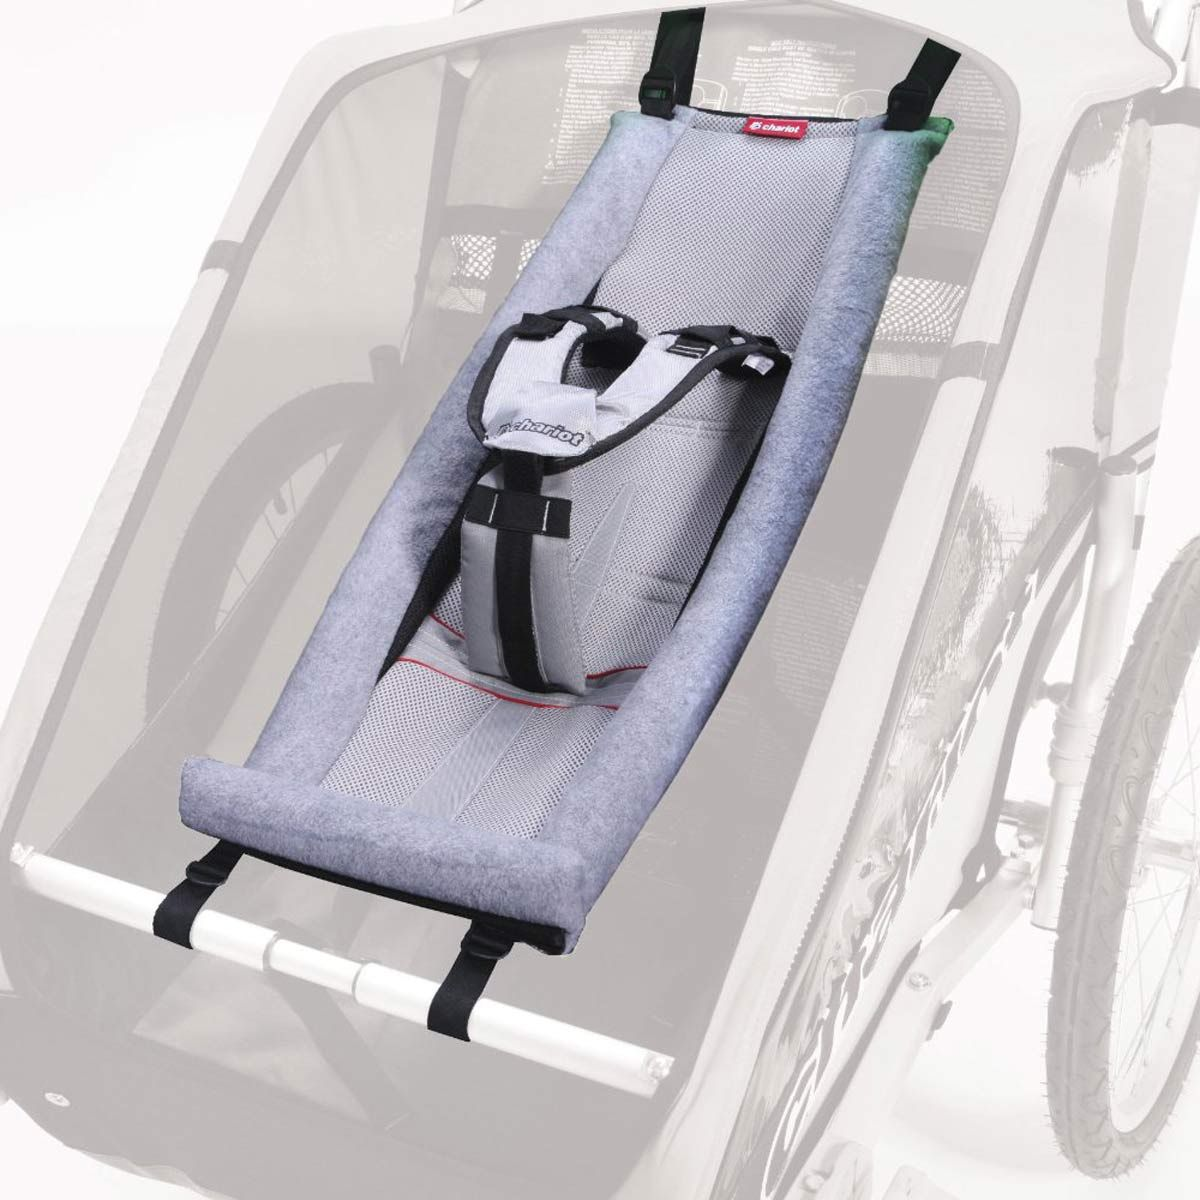 INFANT SLING 1-10M - THULE CHARIOT $100.00 | Thule chariot ...